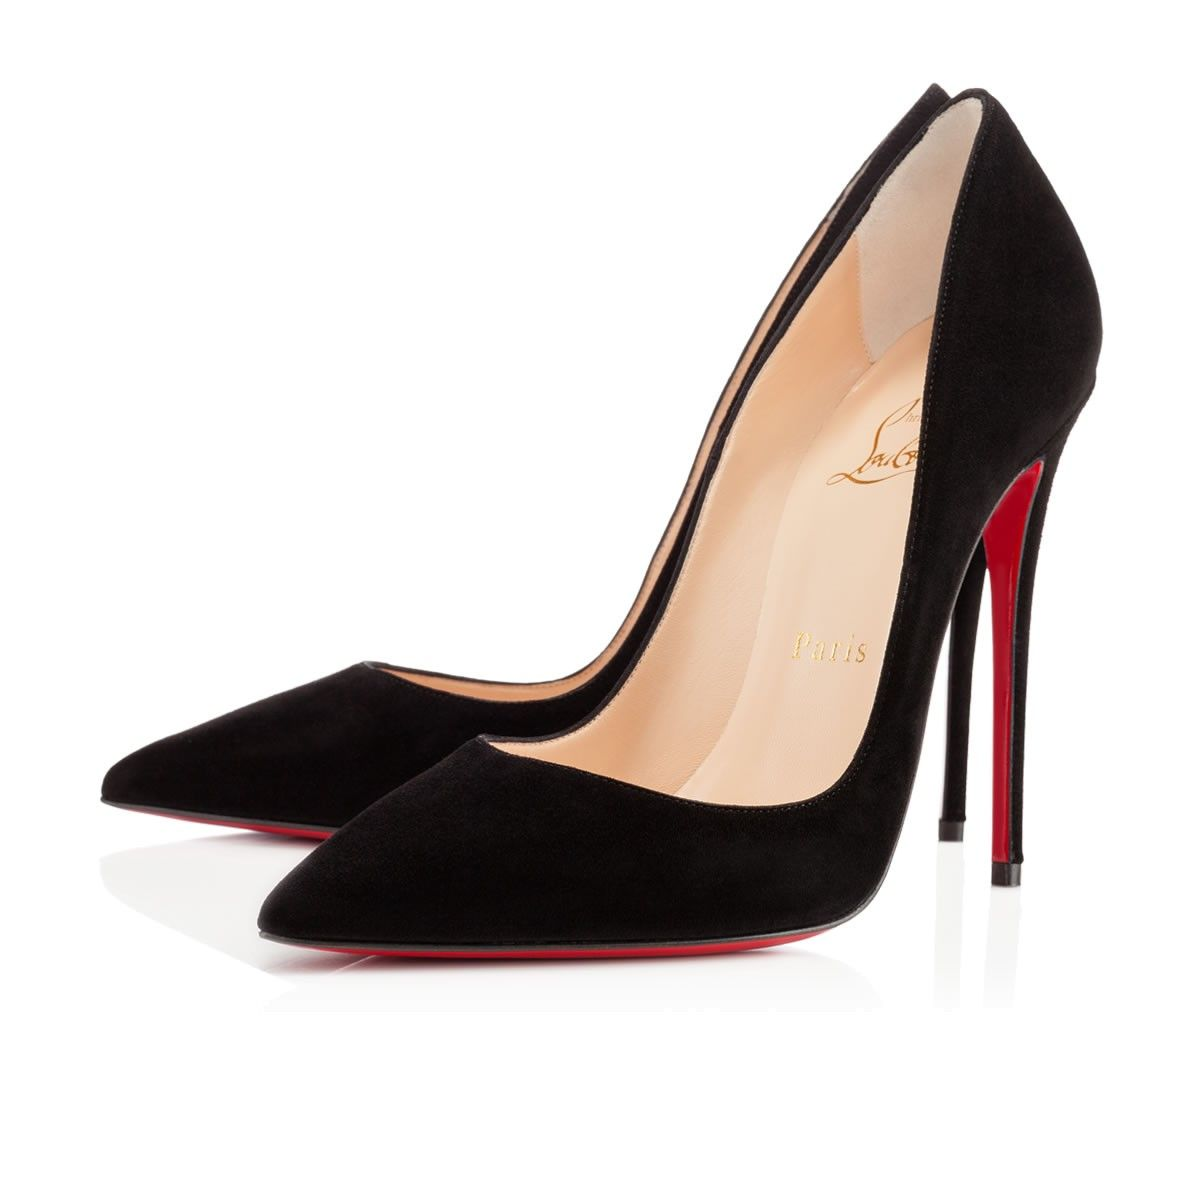 super cute f68be b70b1 Seize Your Chance & Get #Louboutin #Shoes Clearance in Our ...